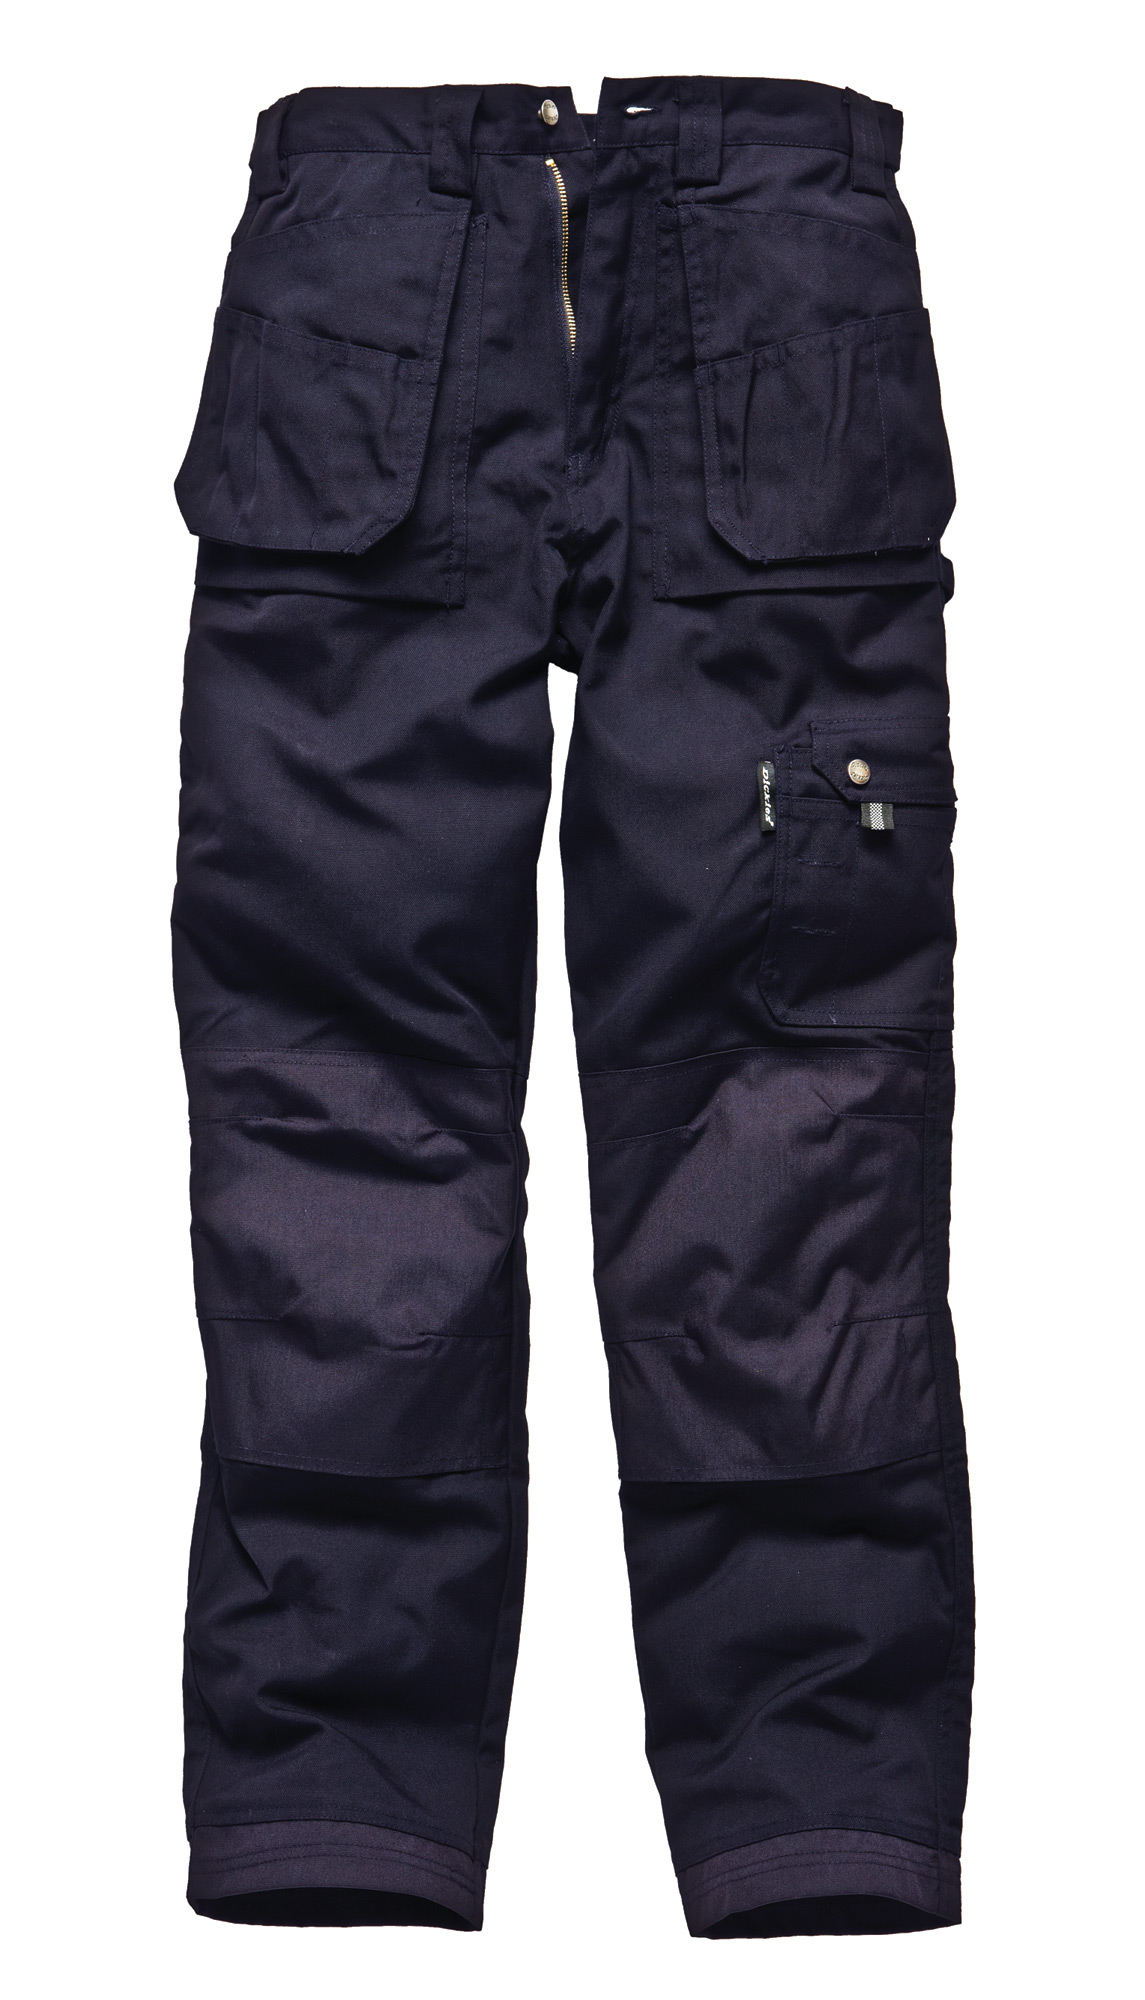 Walt's Used Workwear has been providing used Navy Blue Cargo Work Pants to American workers for over 40 years. Shop Walt's used clothes and save today!